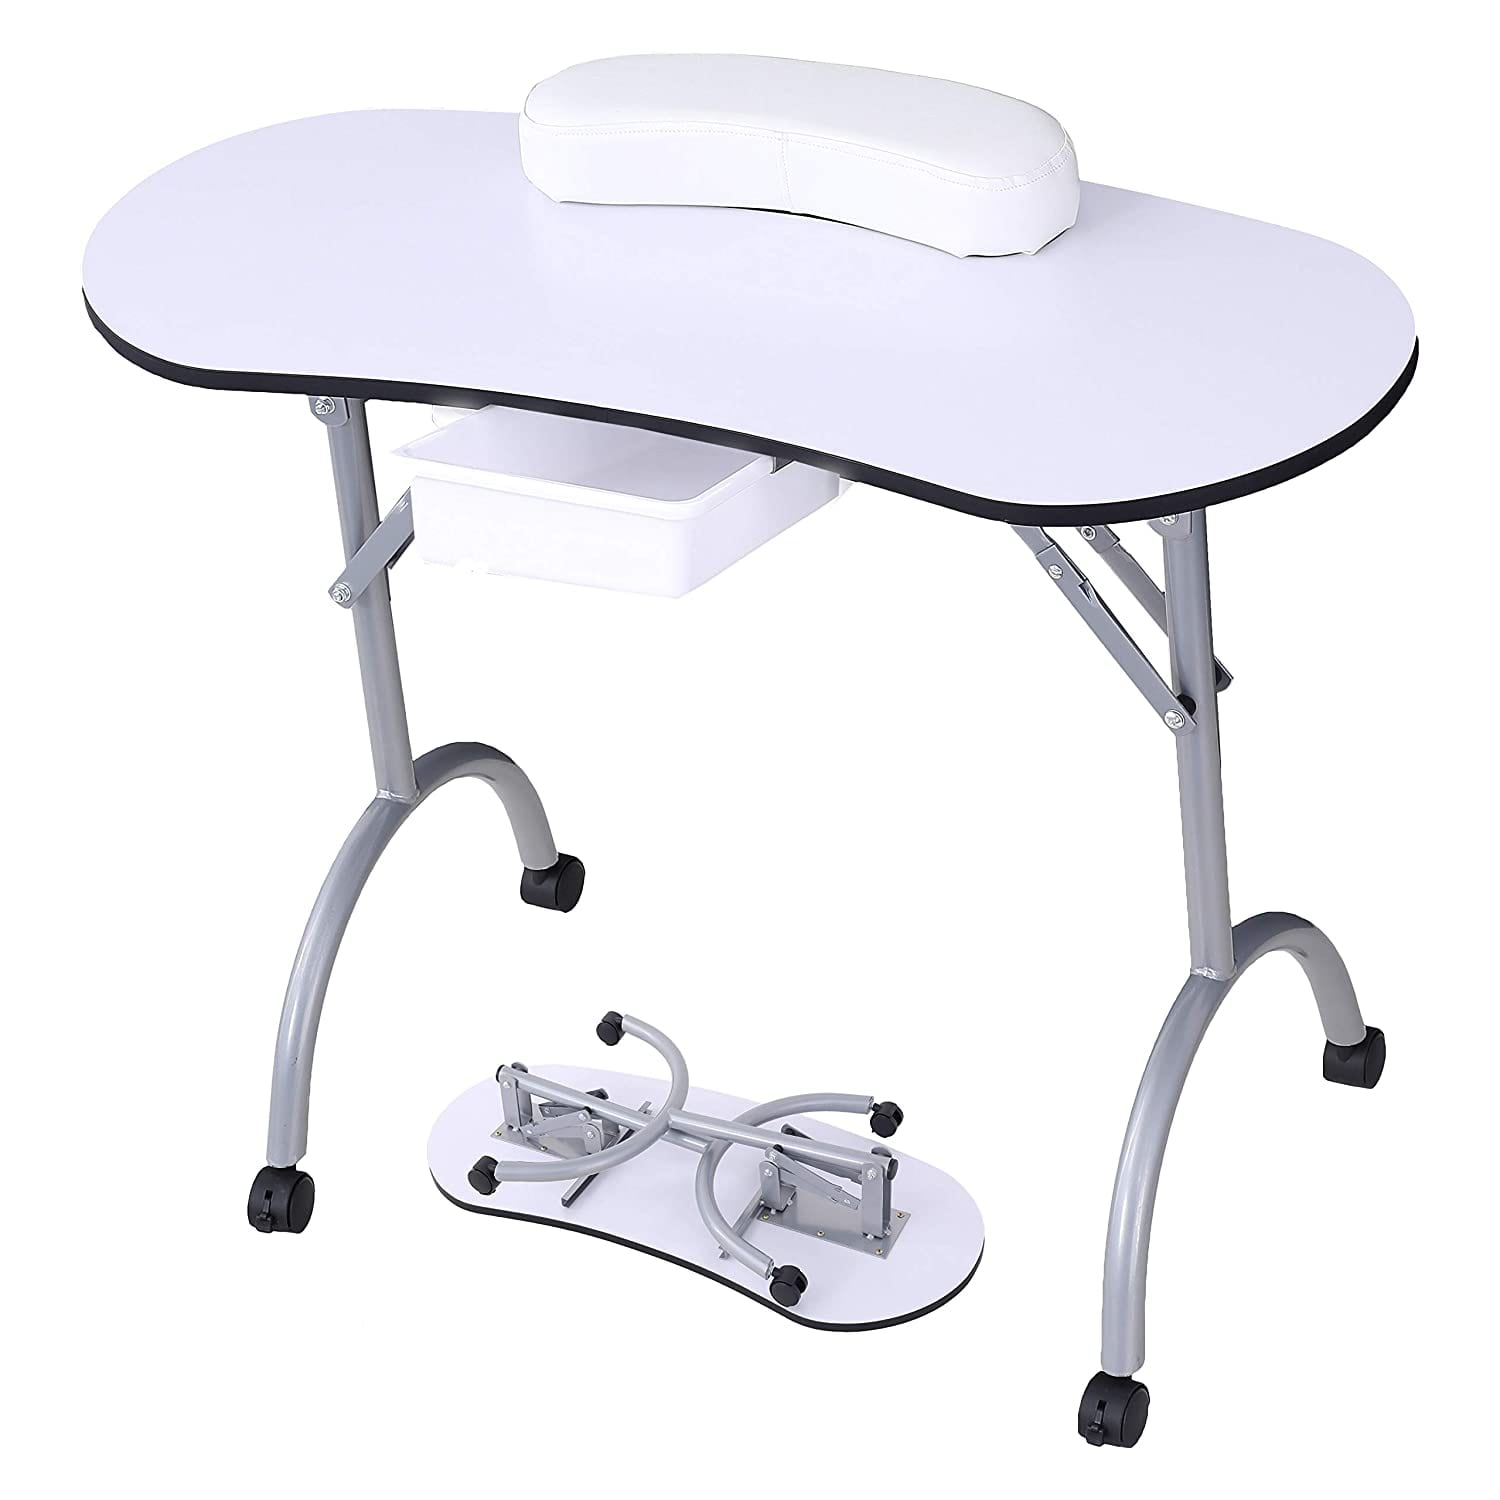 Manicure Nail Table -SUNCOO Nail Station Portable Manicure Desk